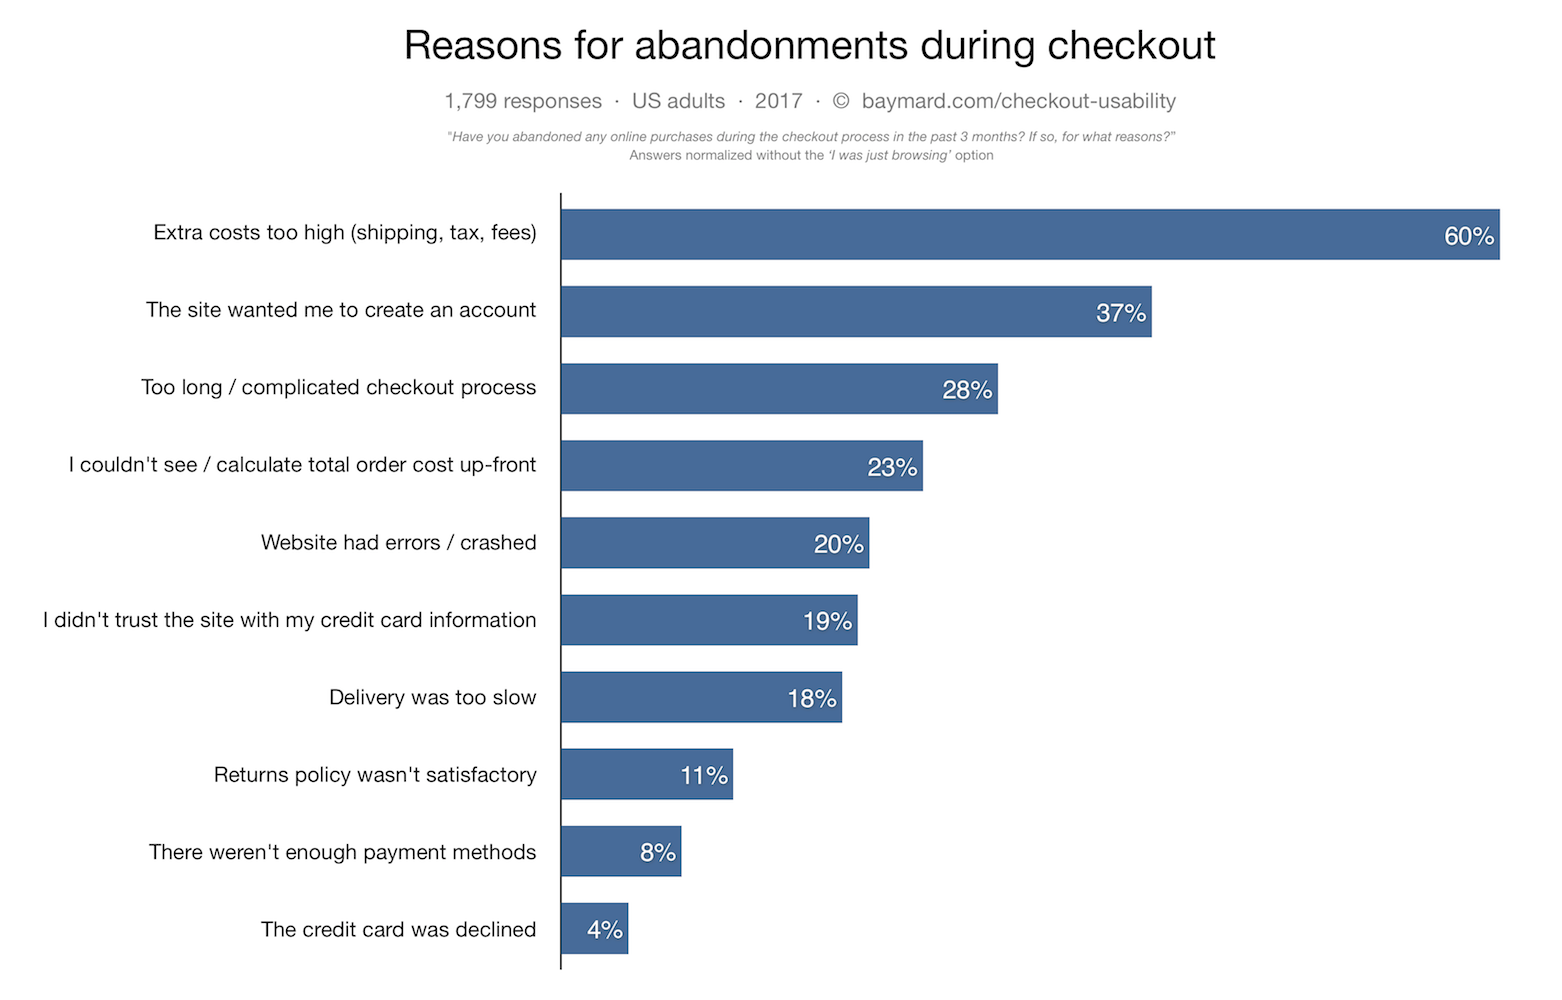 Reasons for abandonments during ecommerce checkout